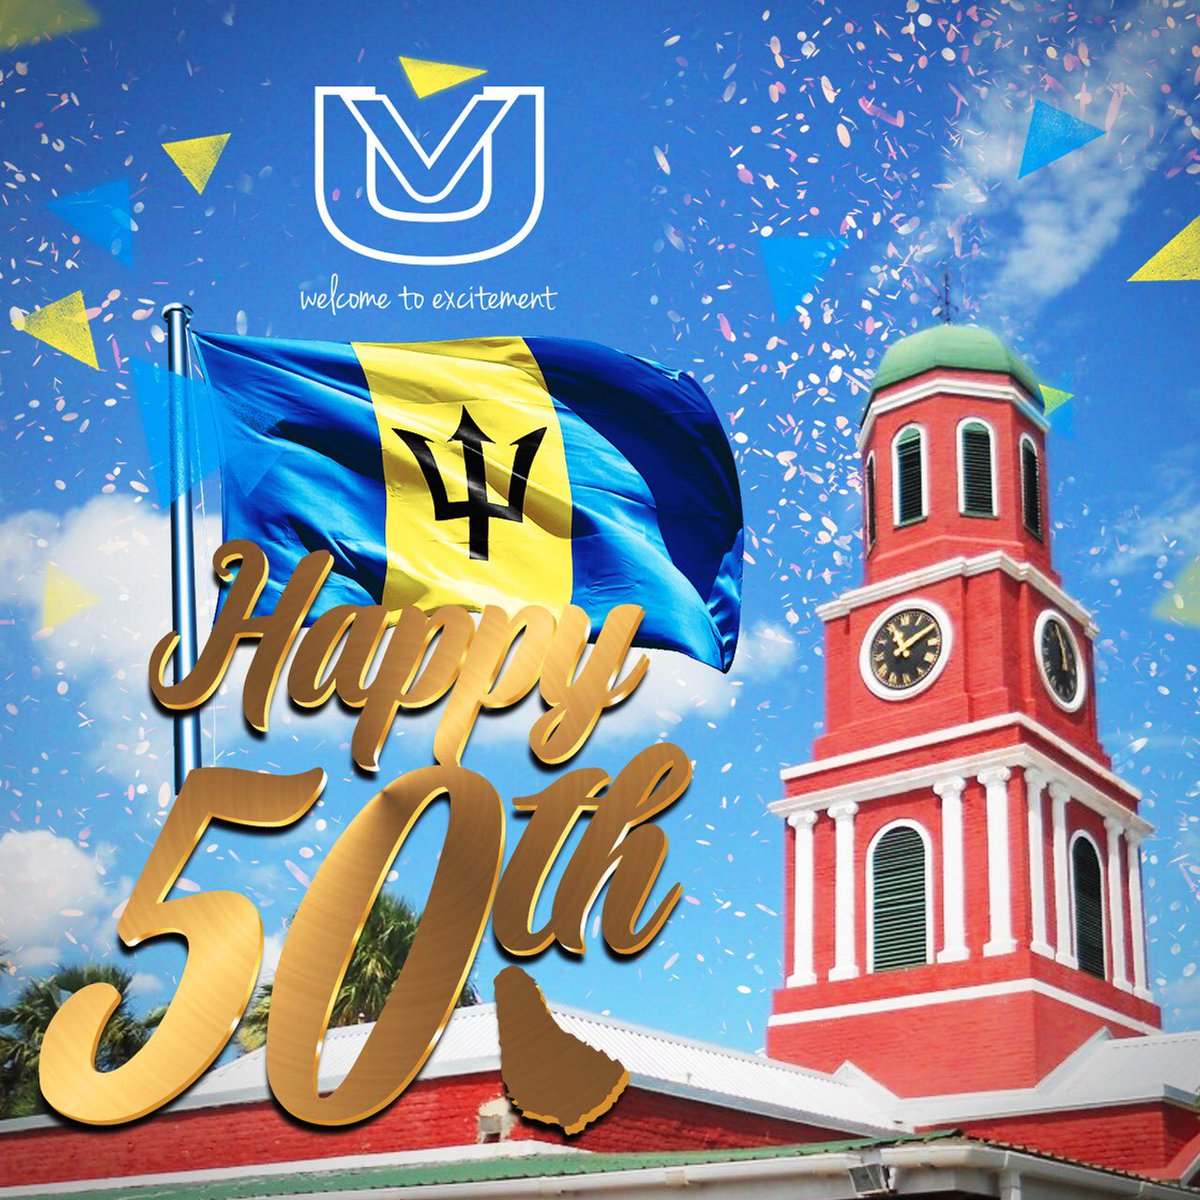 Happy  Independence Day Barbados!  #Celebrating50 #Bim50 https://t.co/CfwnzD30zK